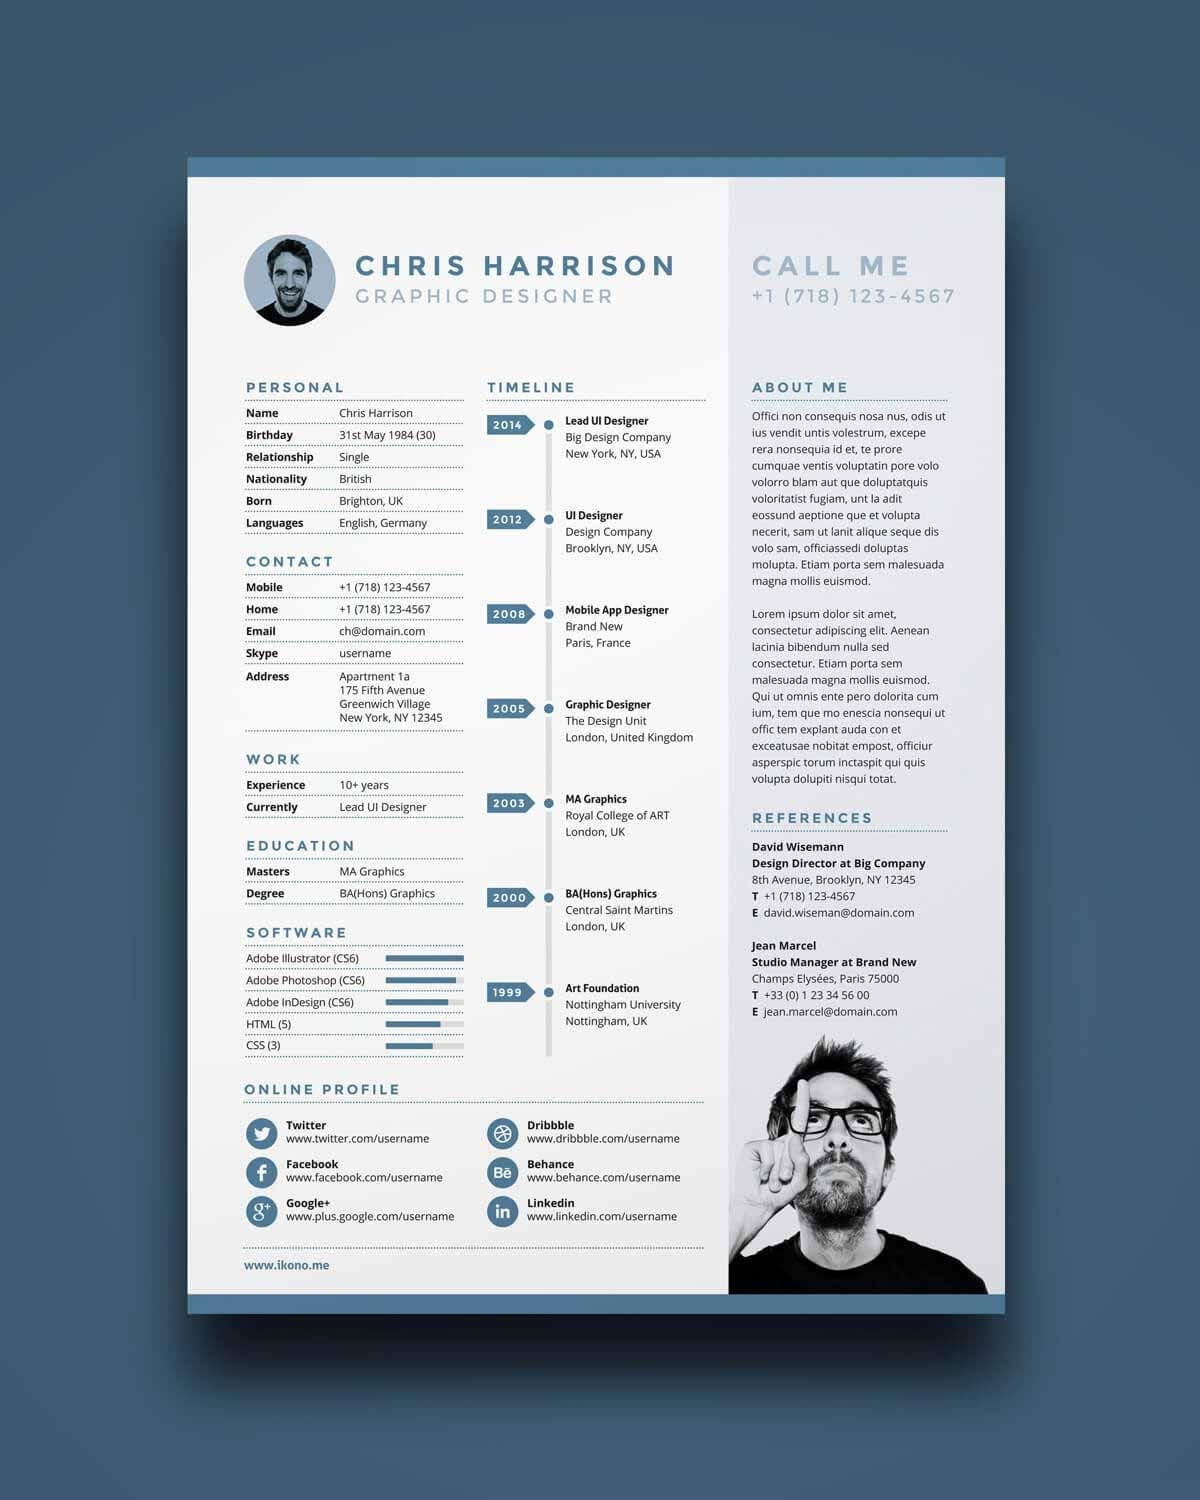 one resume templates examples of format template with photo free for job interview Resume One Page Resume Template With Photo Free Download